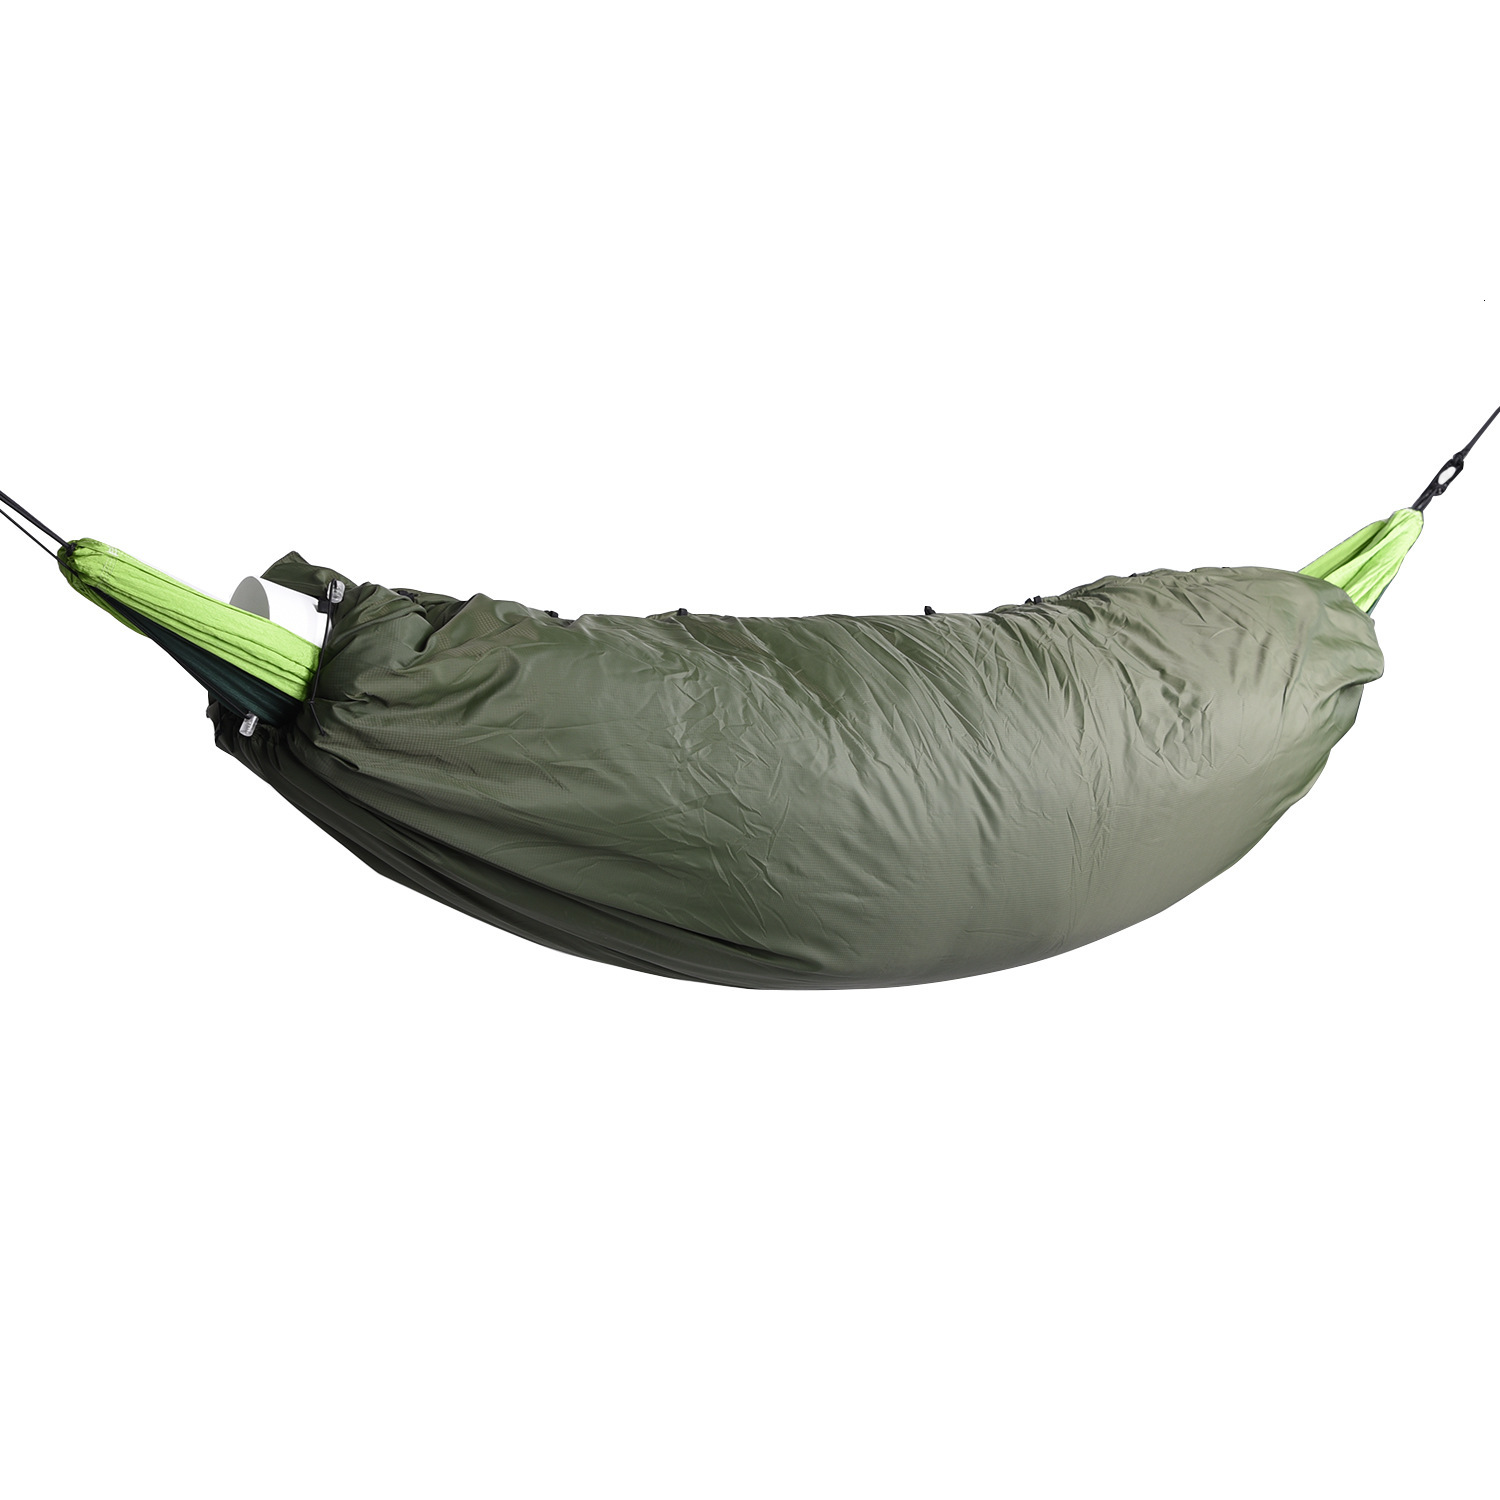 Outdoor Lightweight Hammock Underquilt Essential Gear Camping Warm Bag Quilt Winter Sleeping Bag Hammock Underquilt